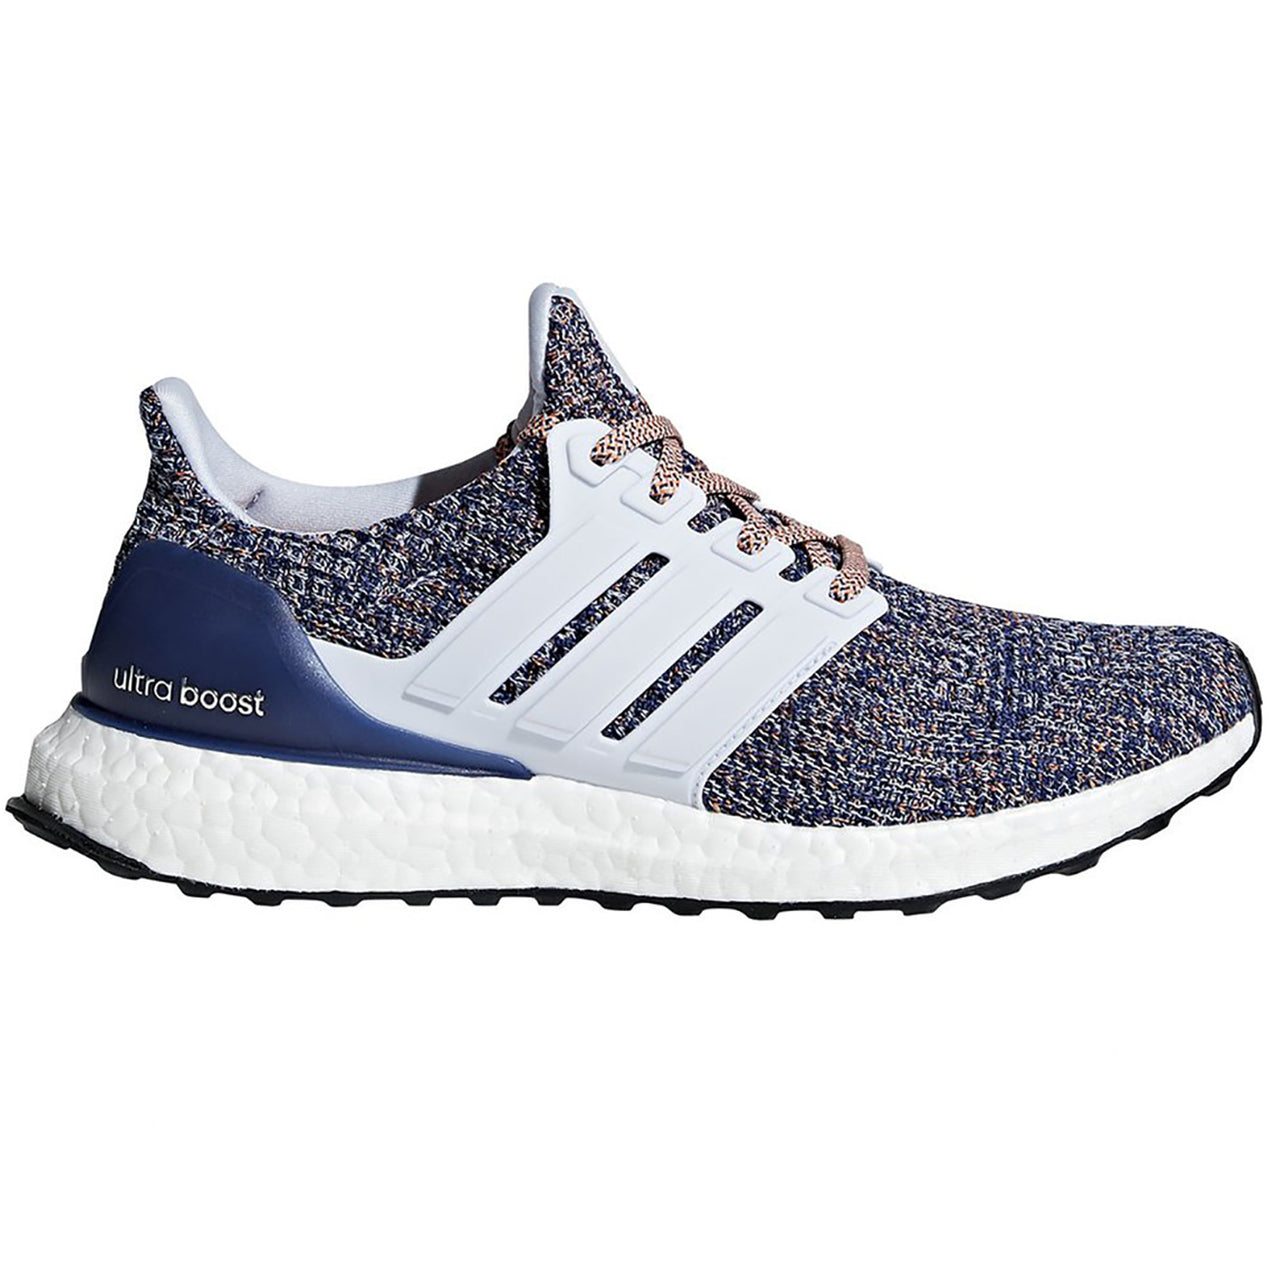 7e953e181 Adidas Women's Ultraboost Running Shoes | Altitude Sports